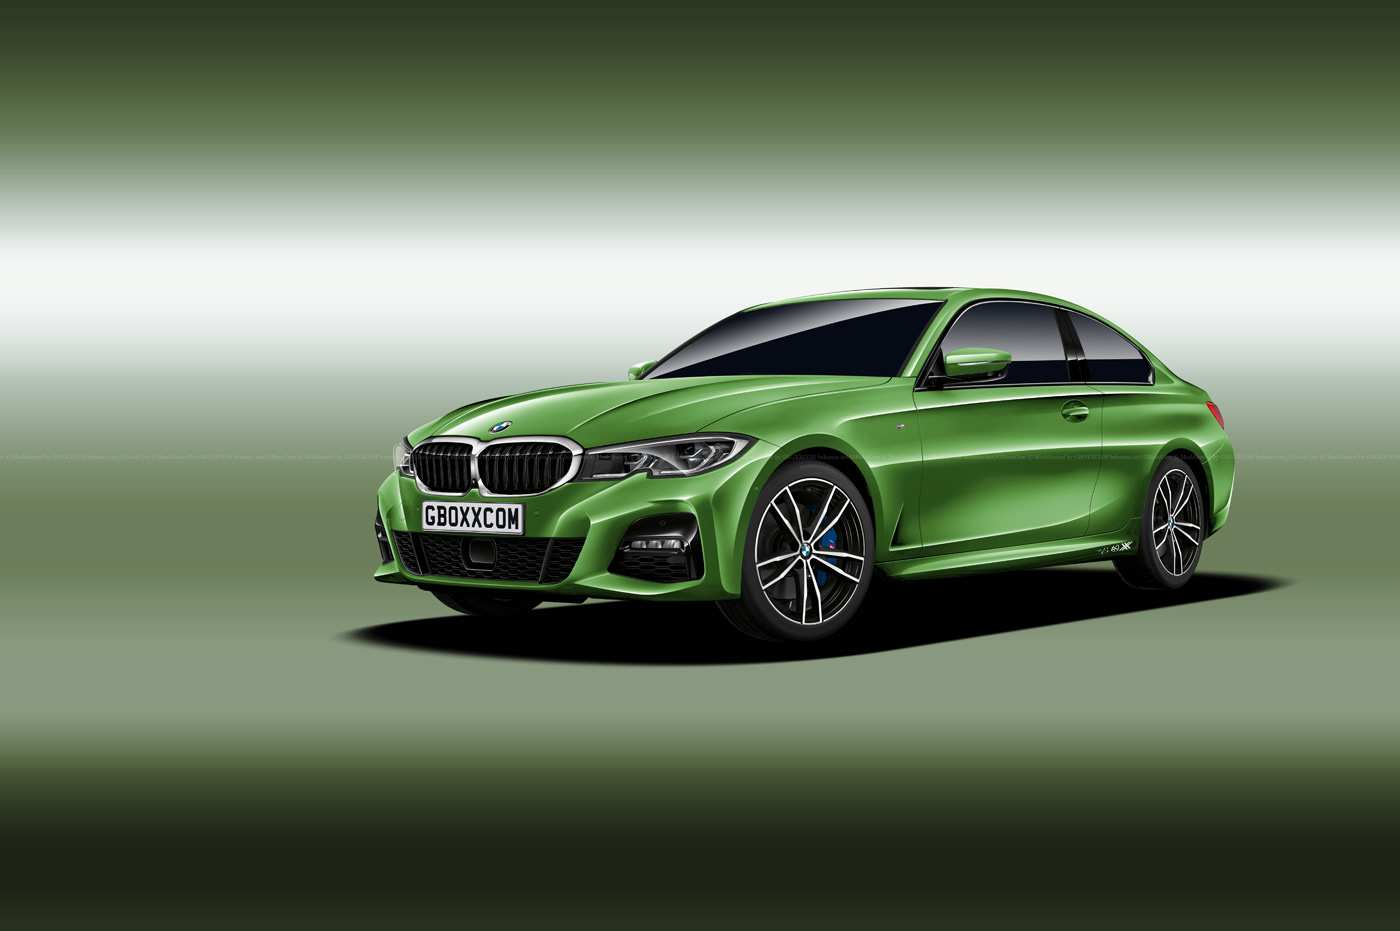 36 New 2020 Bmw G23 Release Date for 2020 Bmw G23